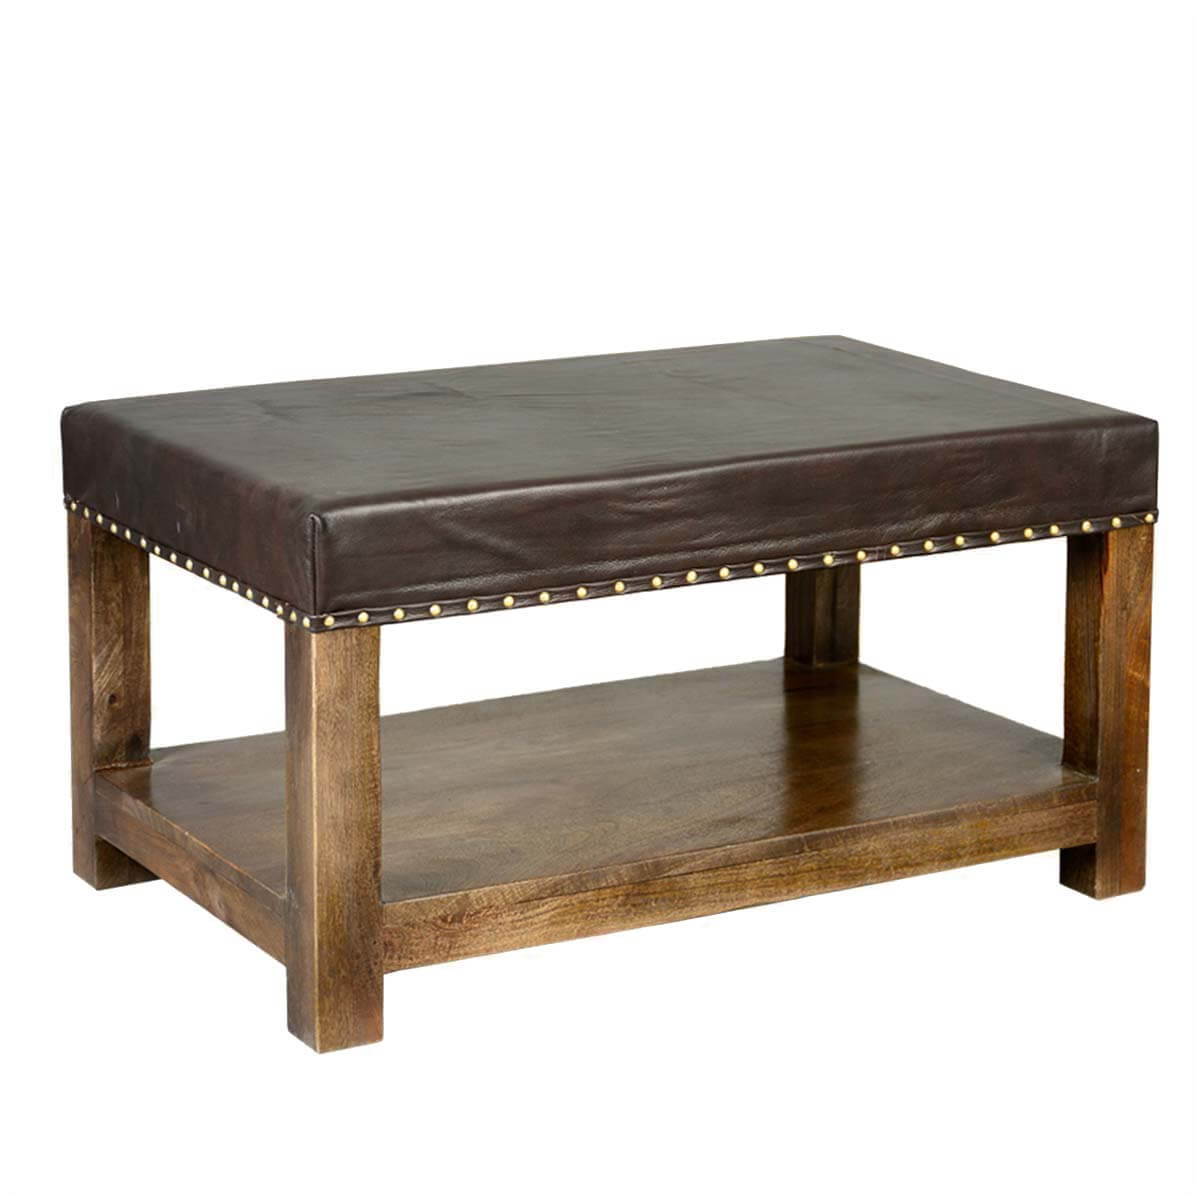 Solid Wood Espresso Leather Upholstered 2 Tier Coffee Table Ottoman